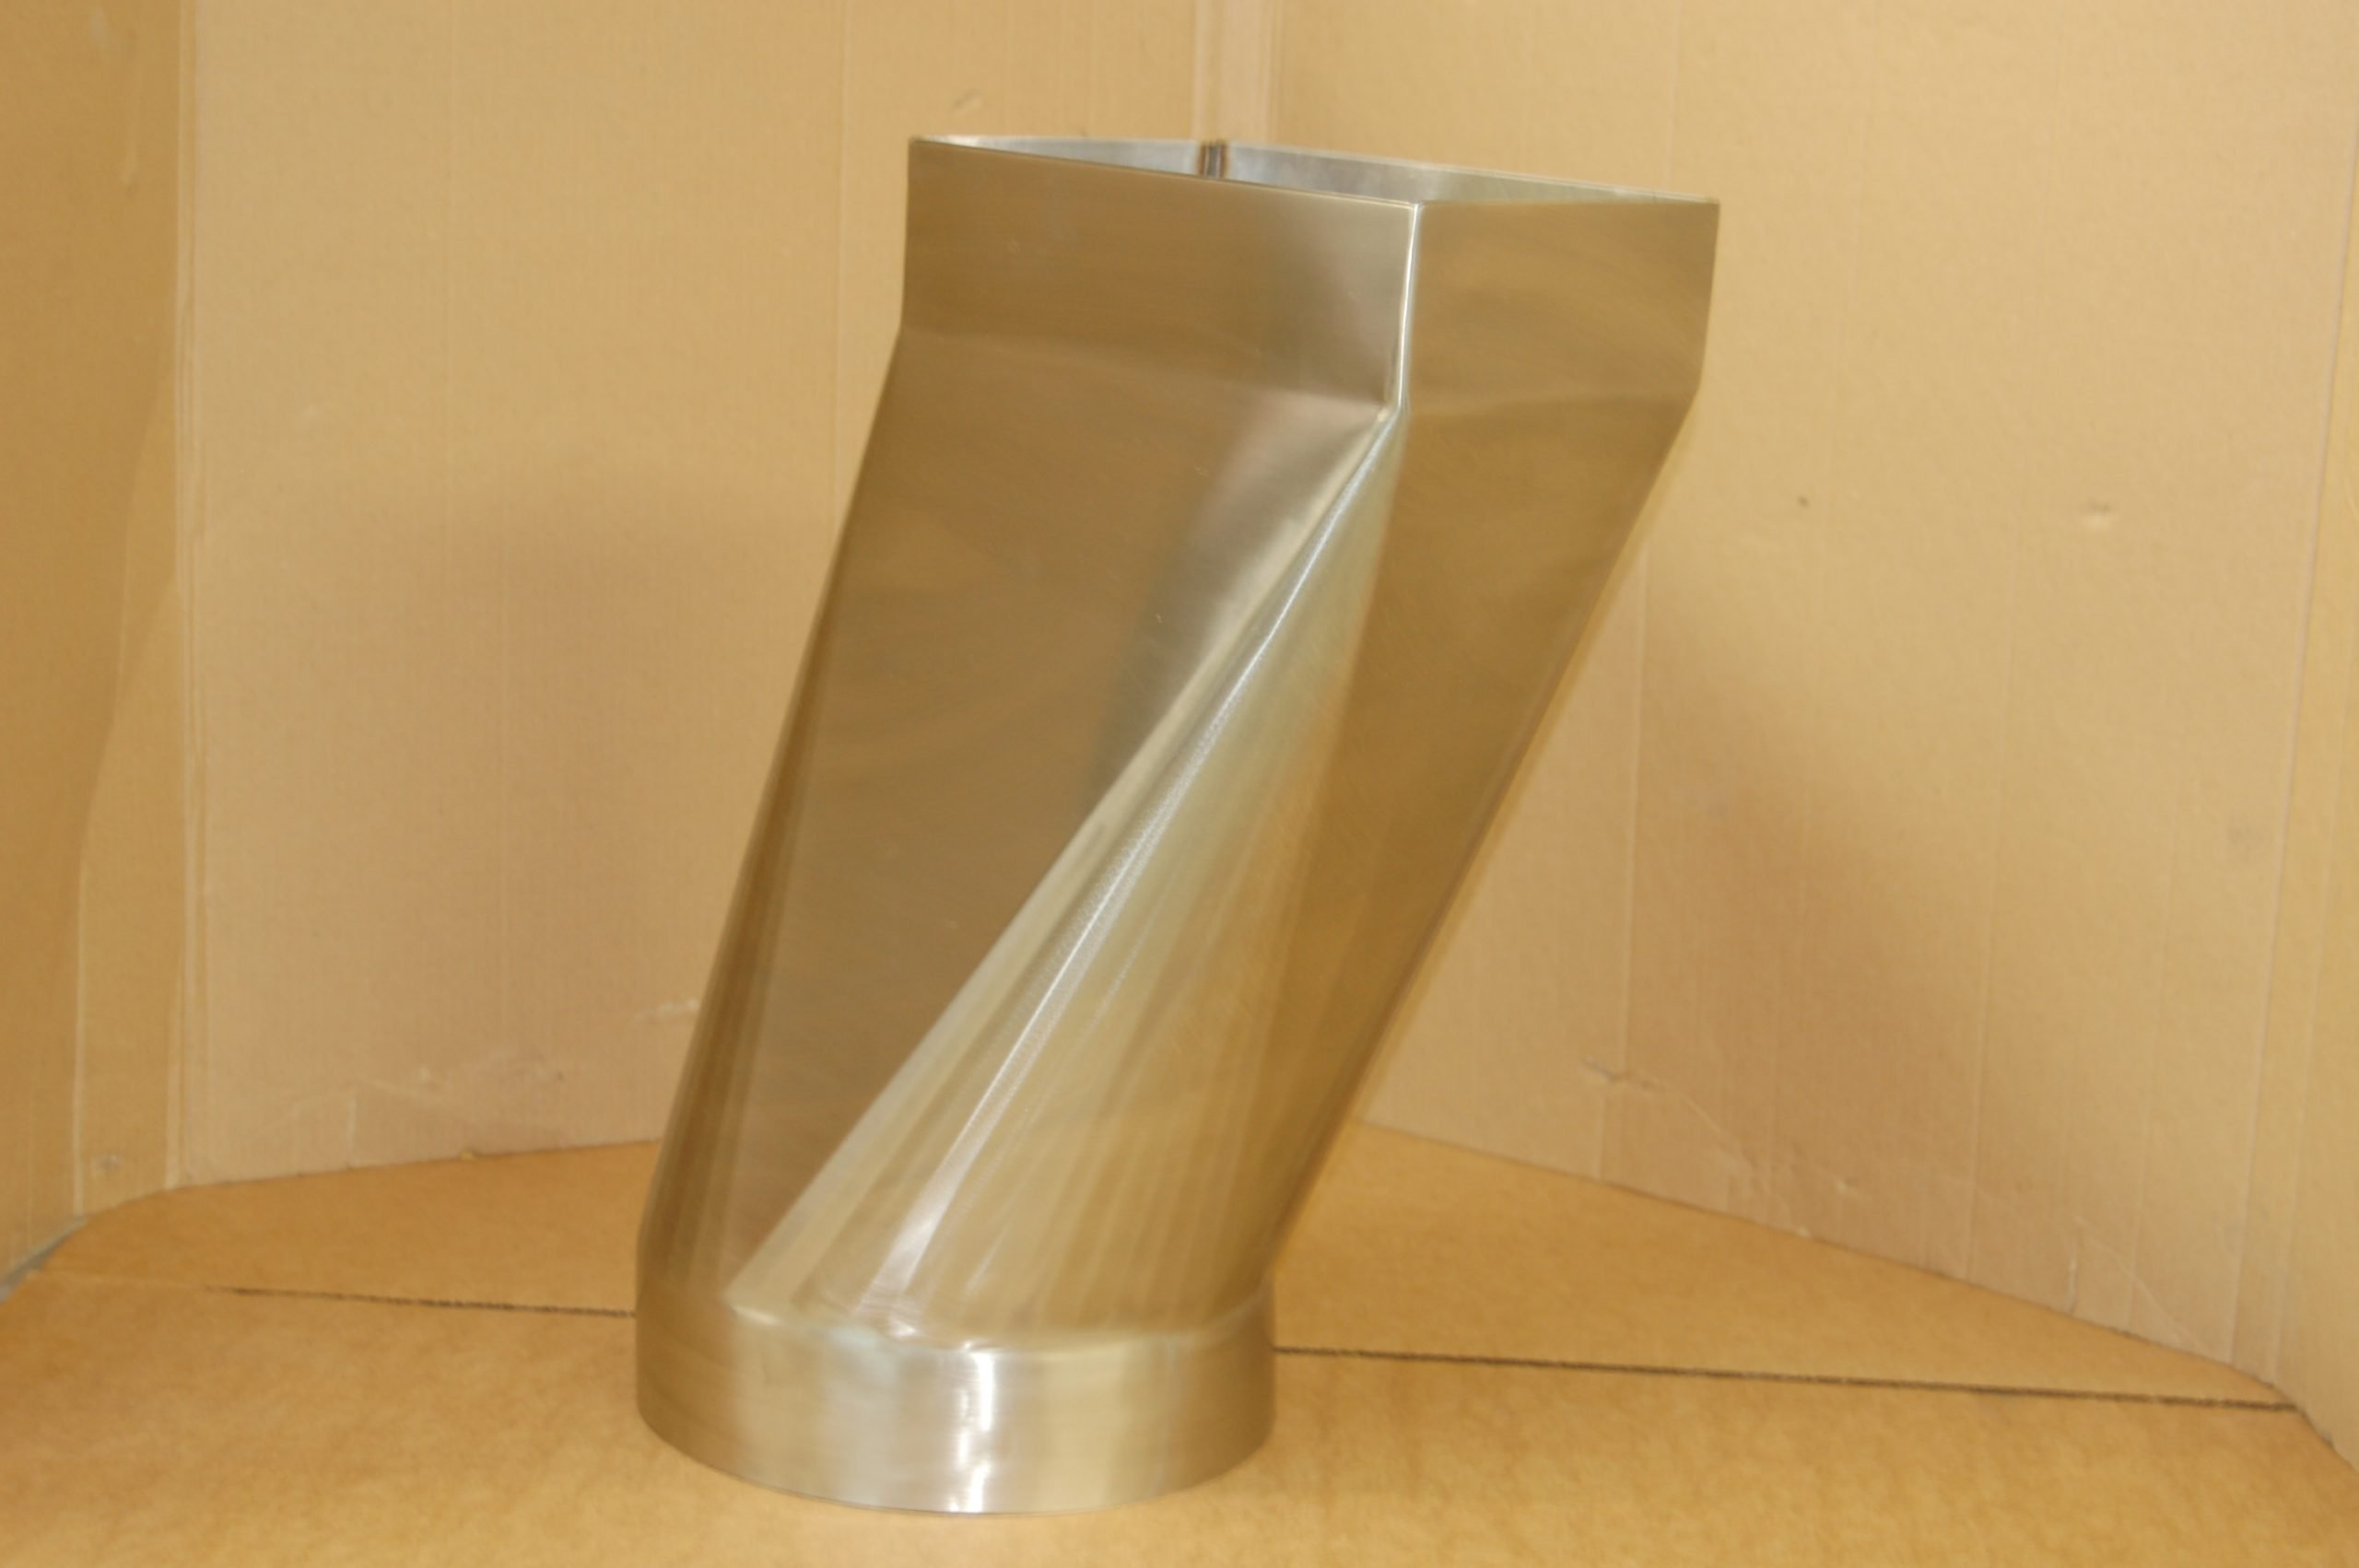 custom stainless steel exhaust duct transitional circle to square